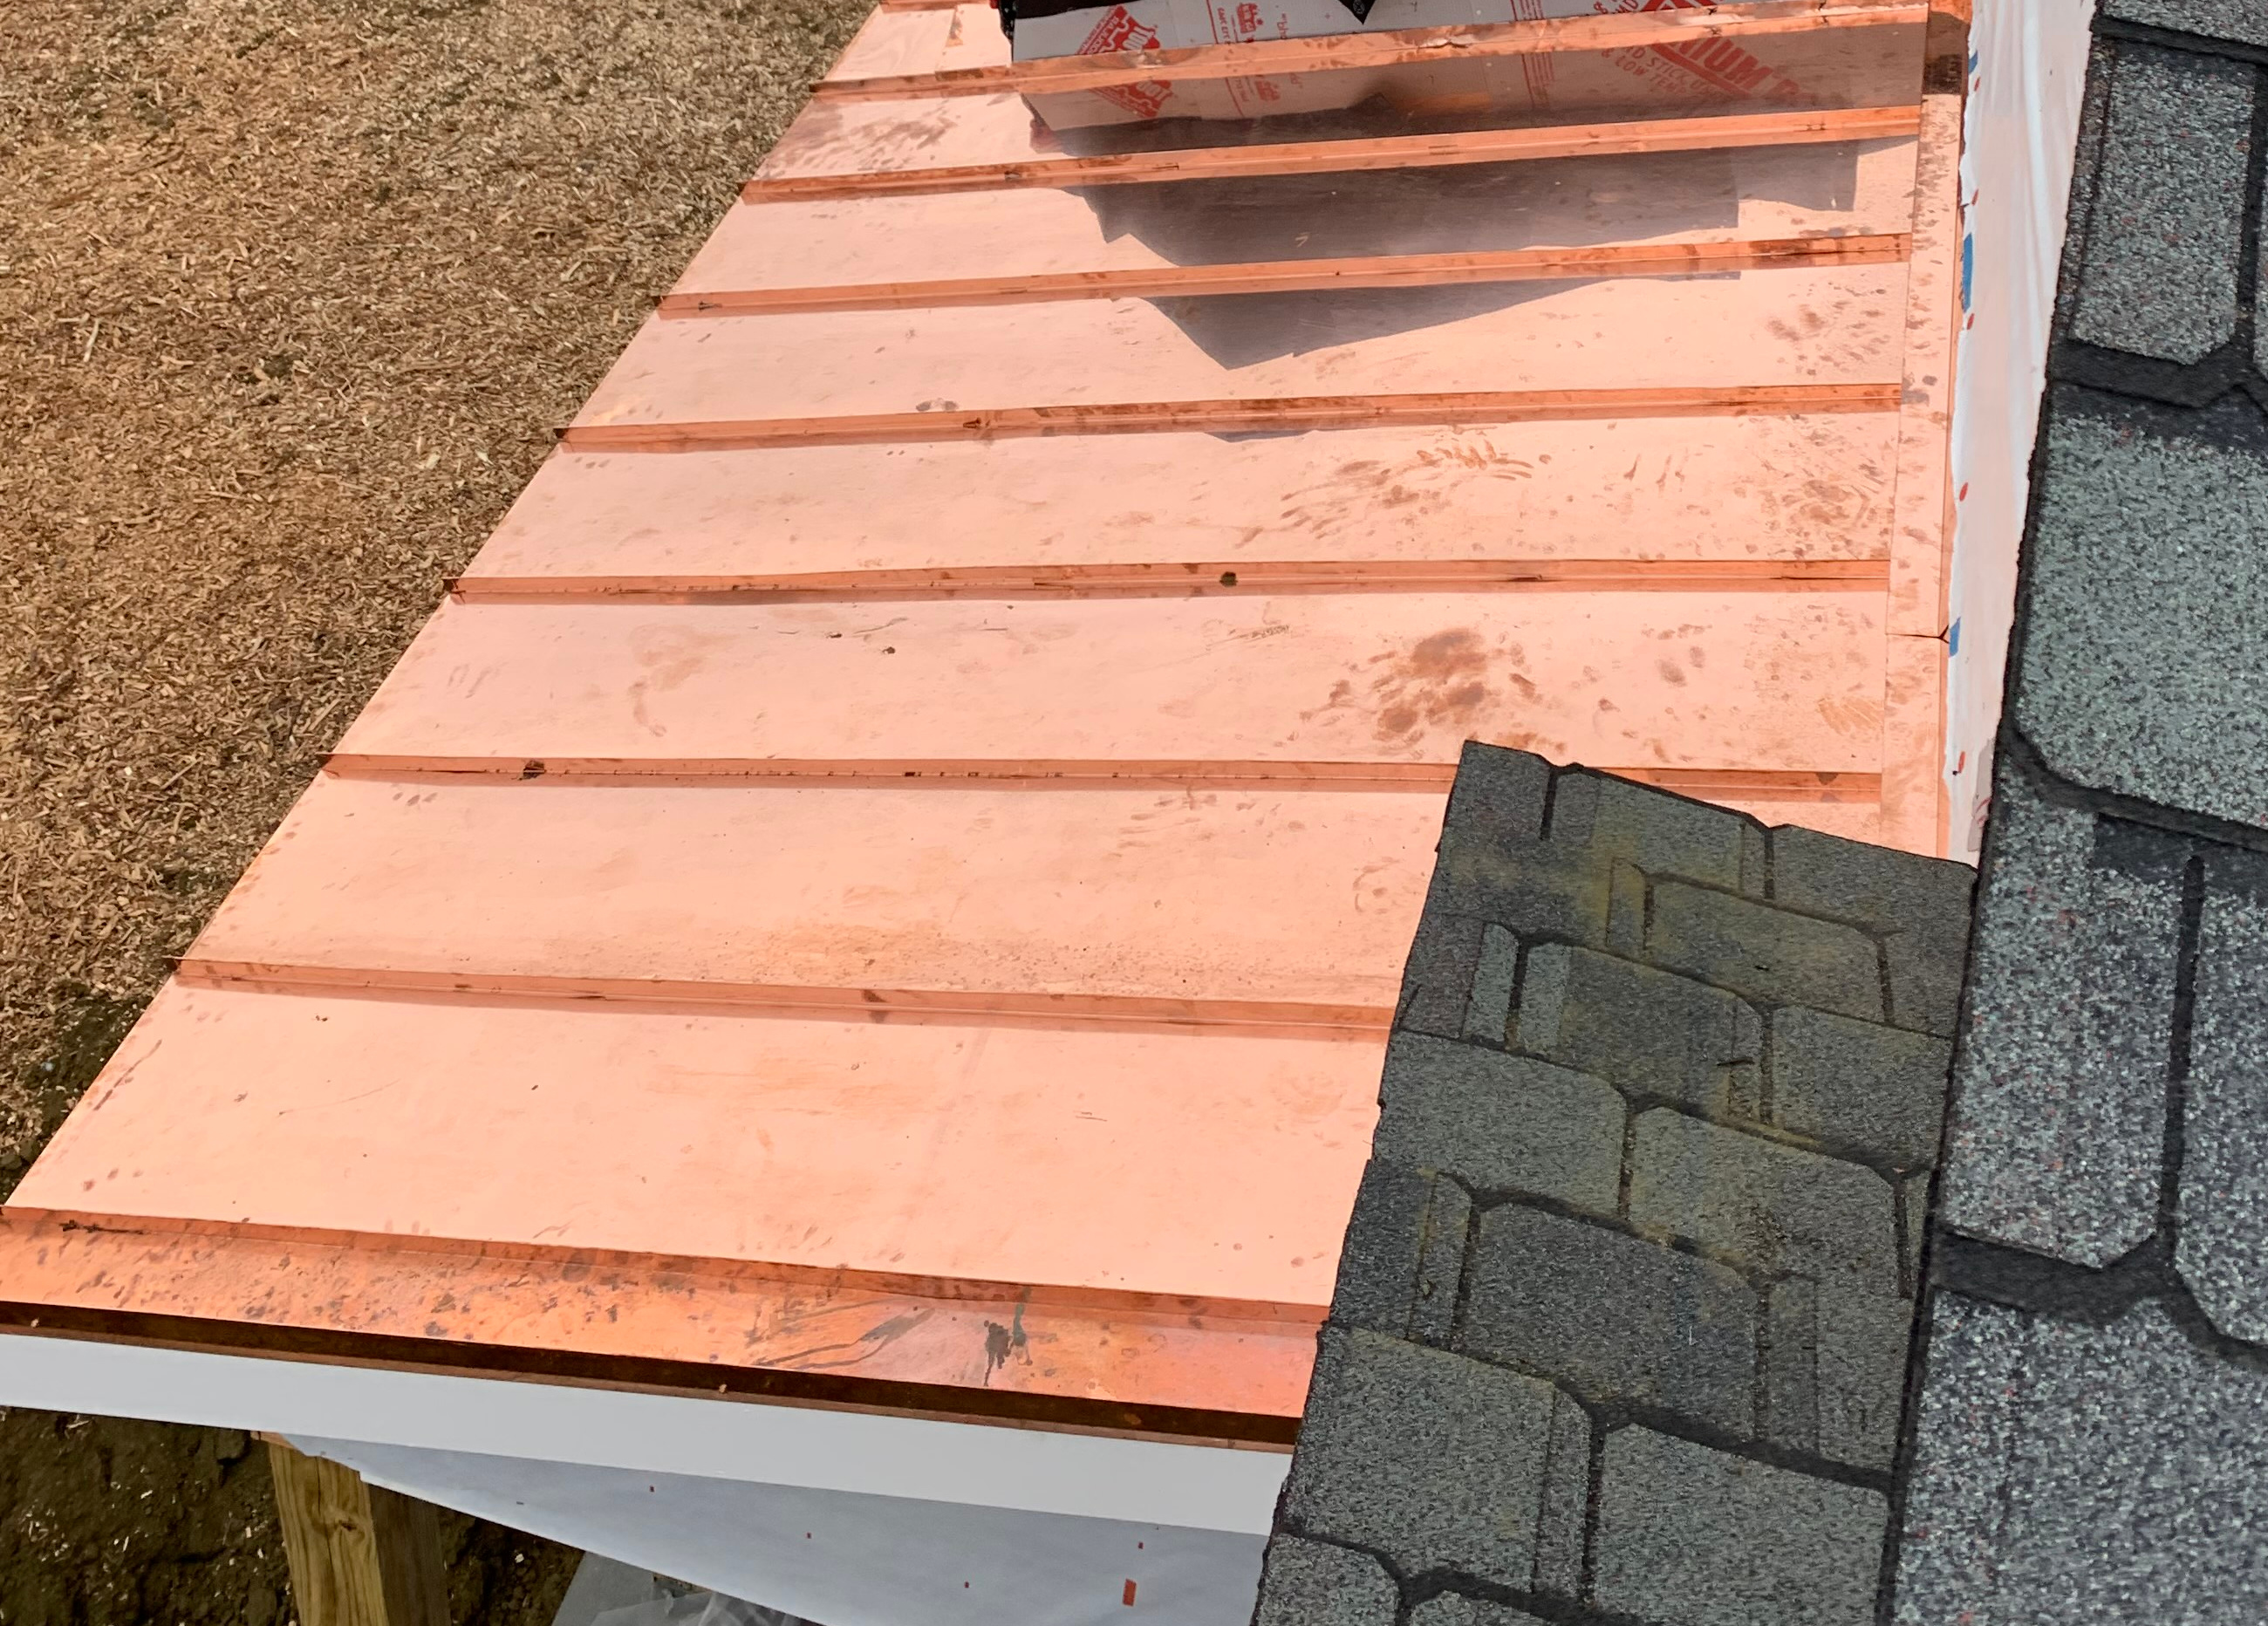 Roofers in Linthicum, MD 21090